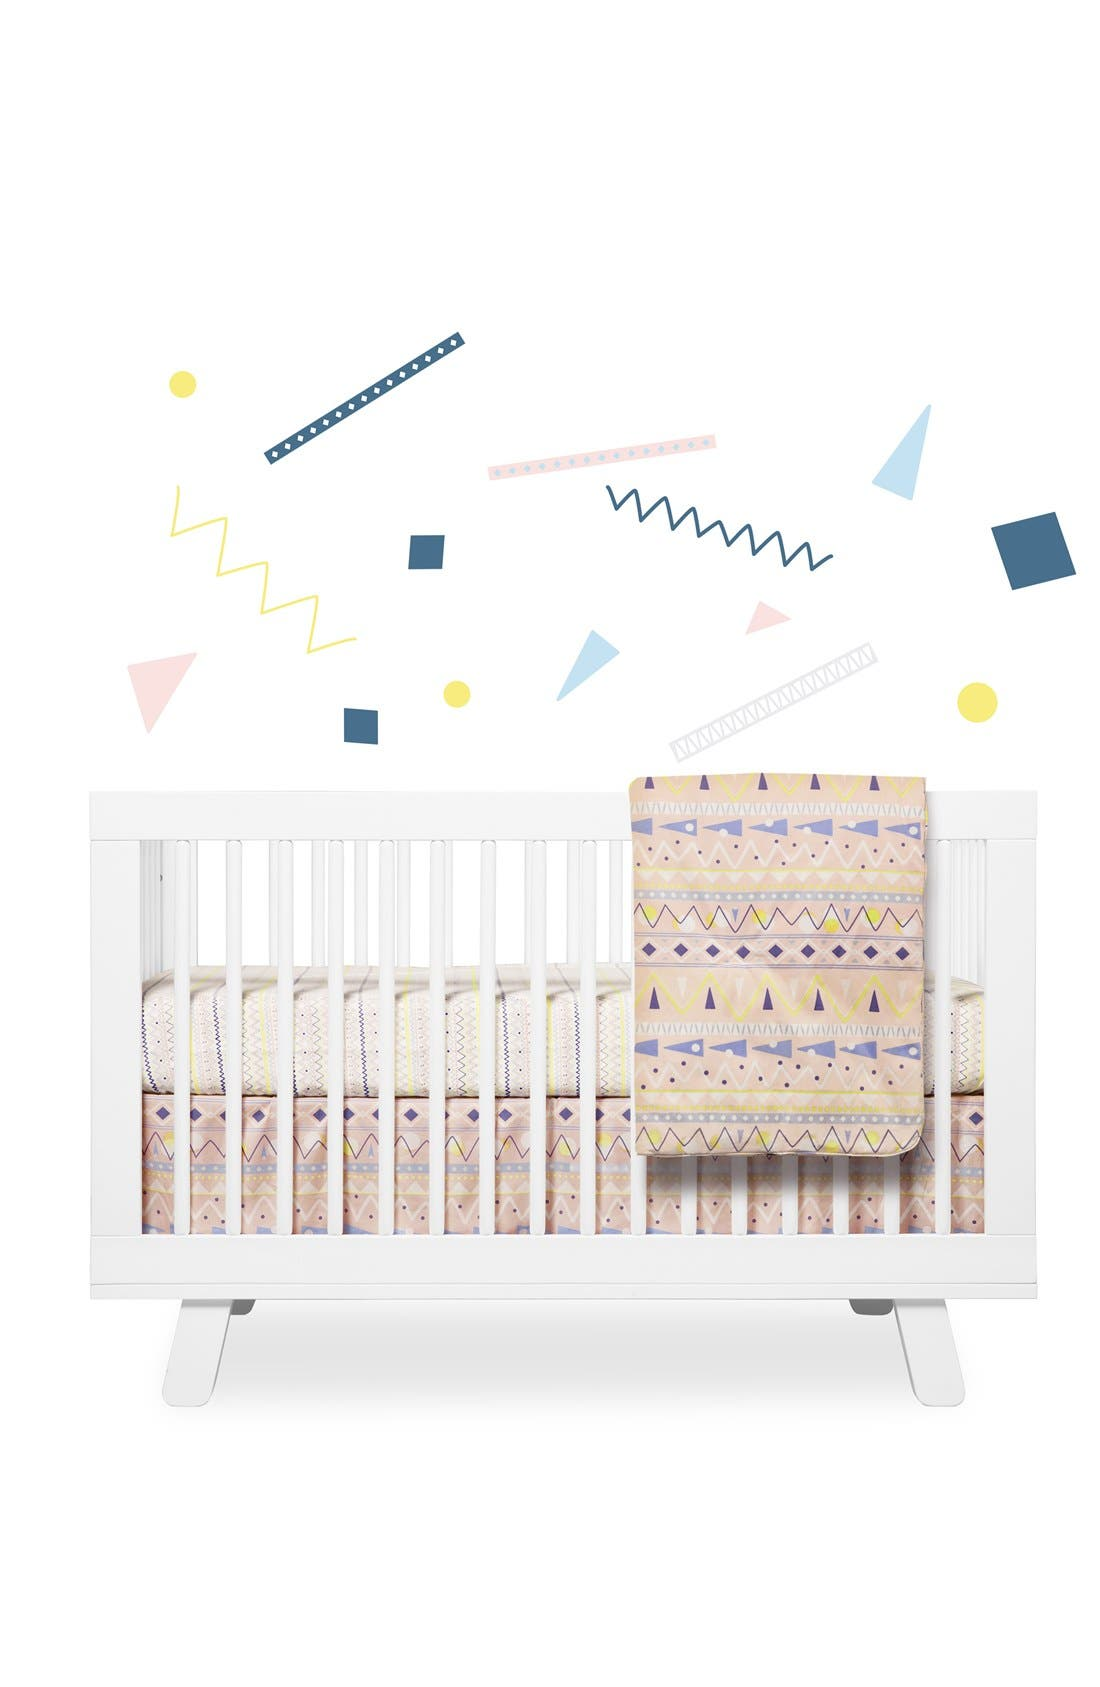 BABYLETTO 'Desert' Crib Sheet, Crib Skirt, Changing Pad Cover, Blanket & Wall Decals, Main, color, 900